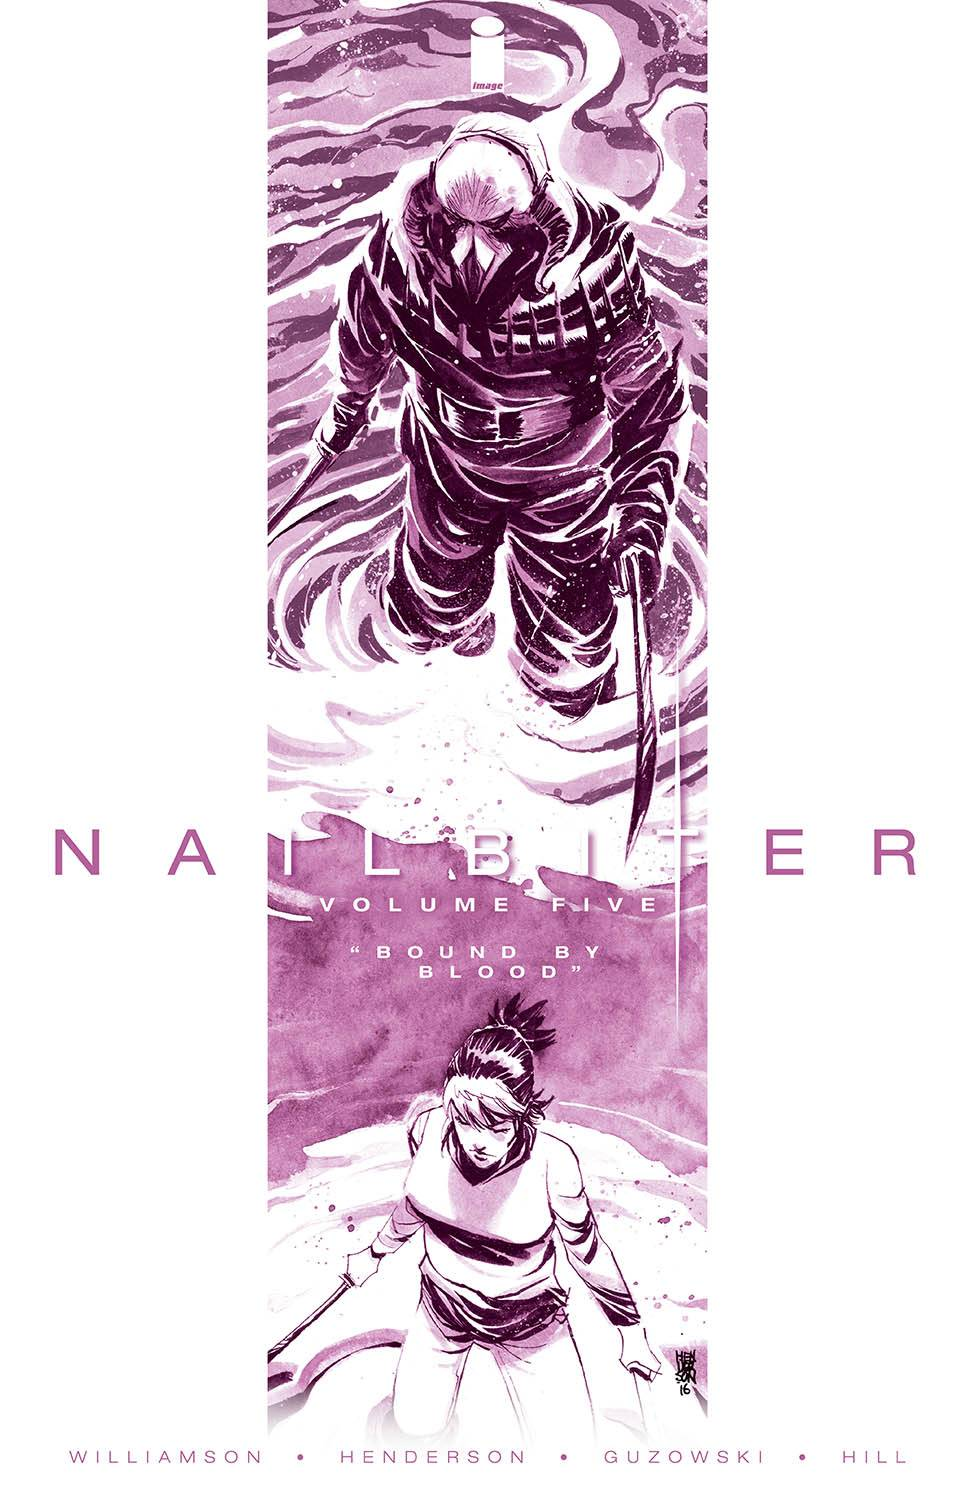 NAILBITER TP VOL 05 BOUND BY BLOOD (SEP160813) (MR)